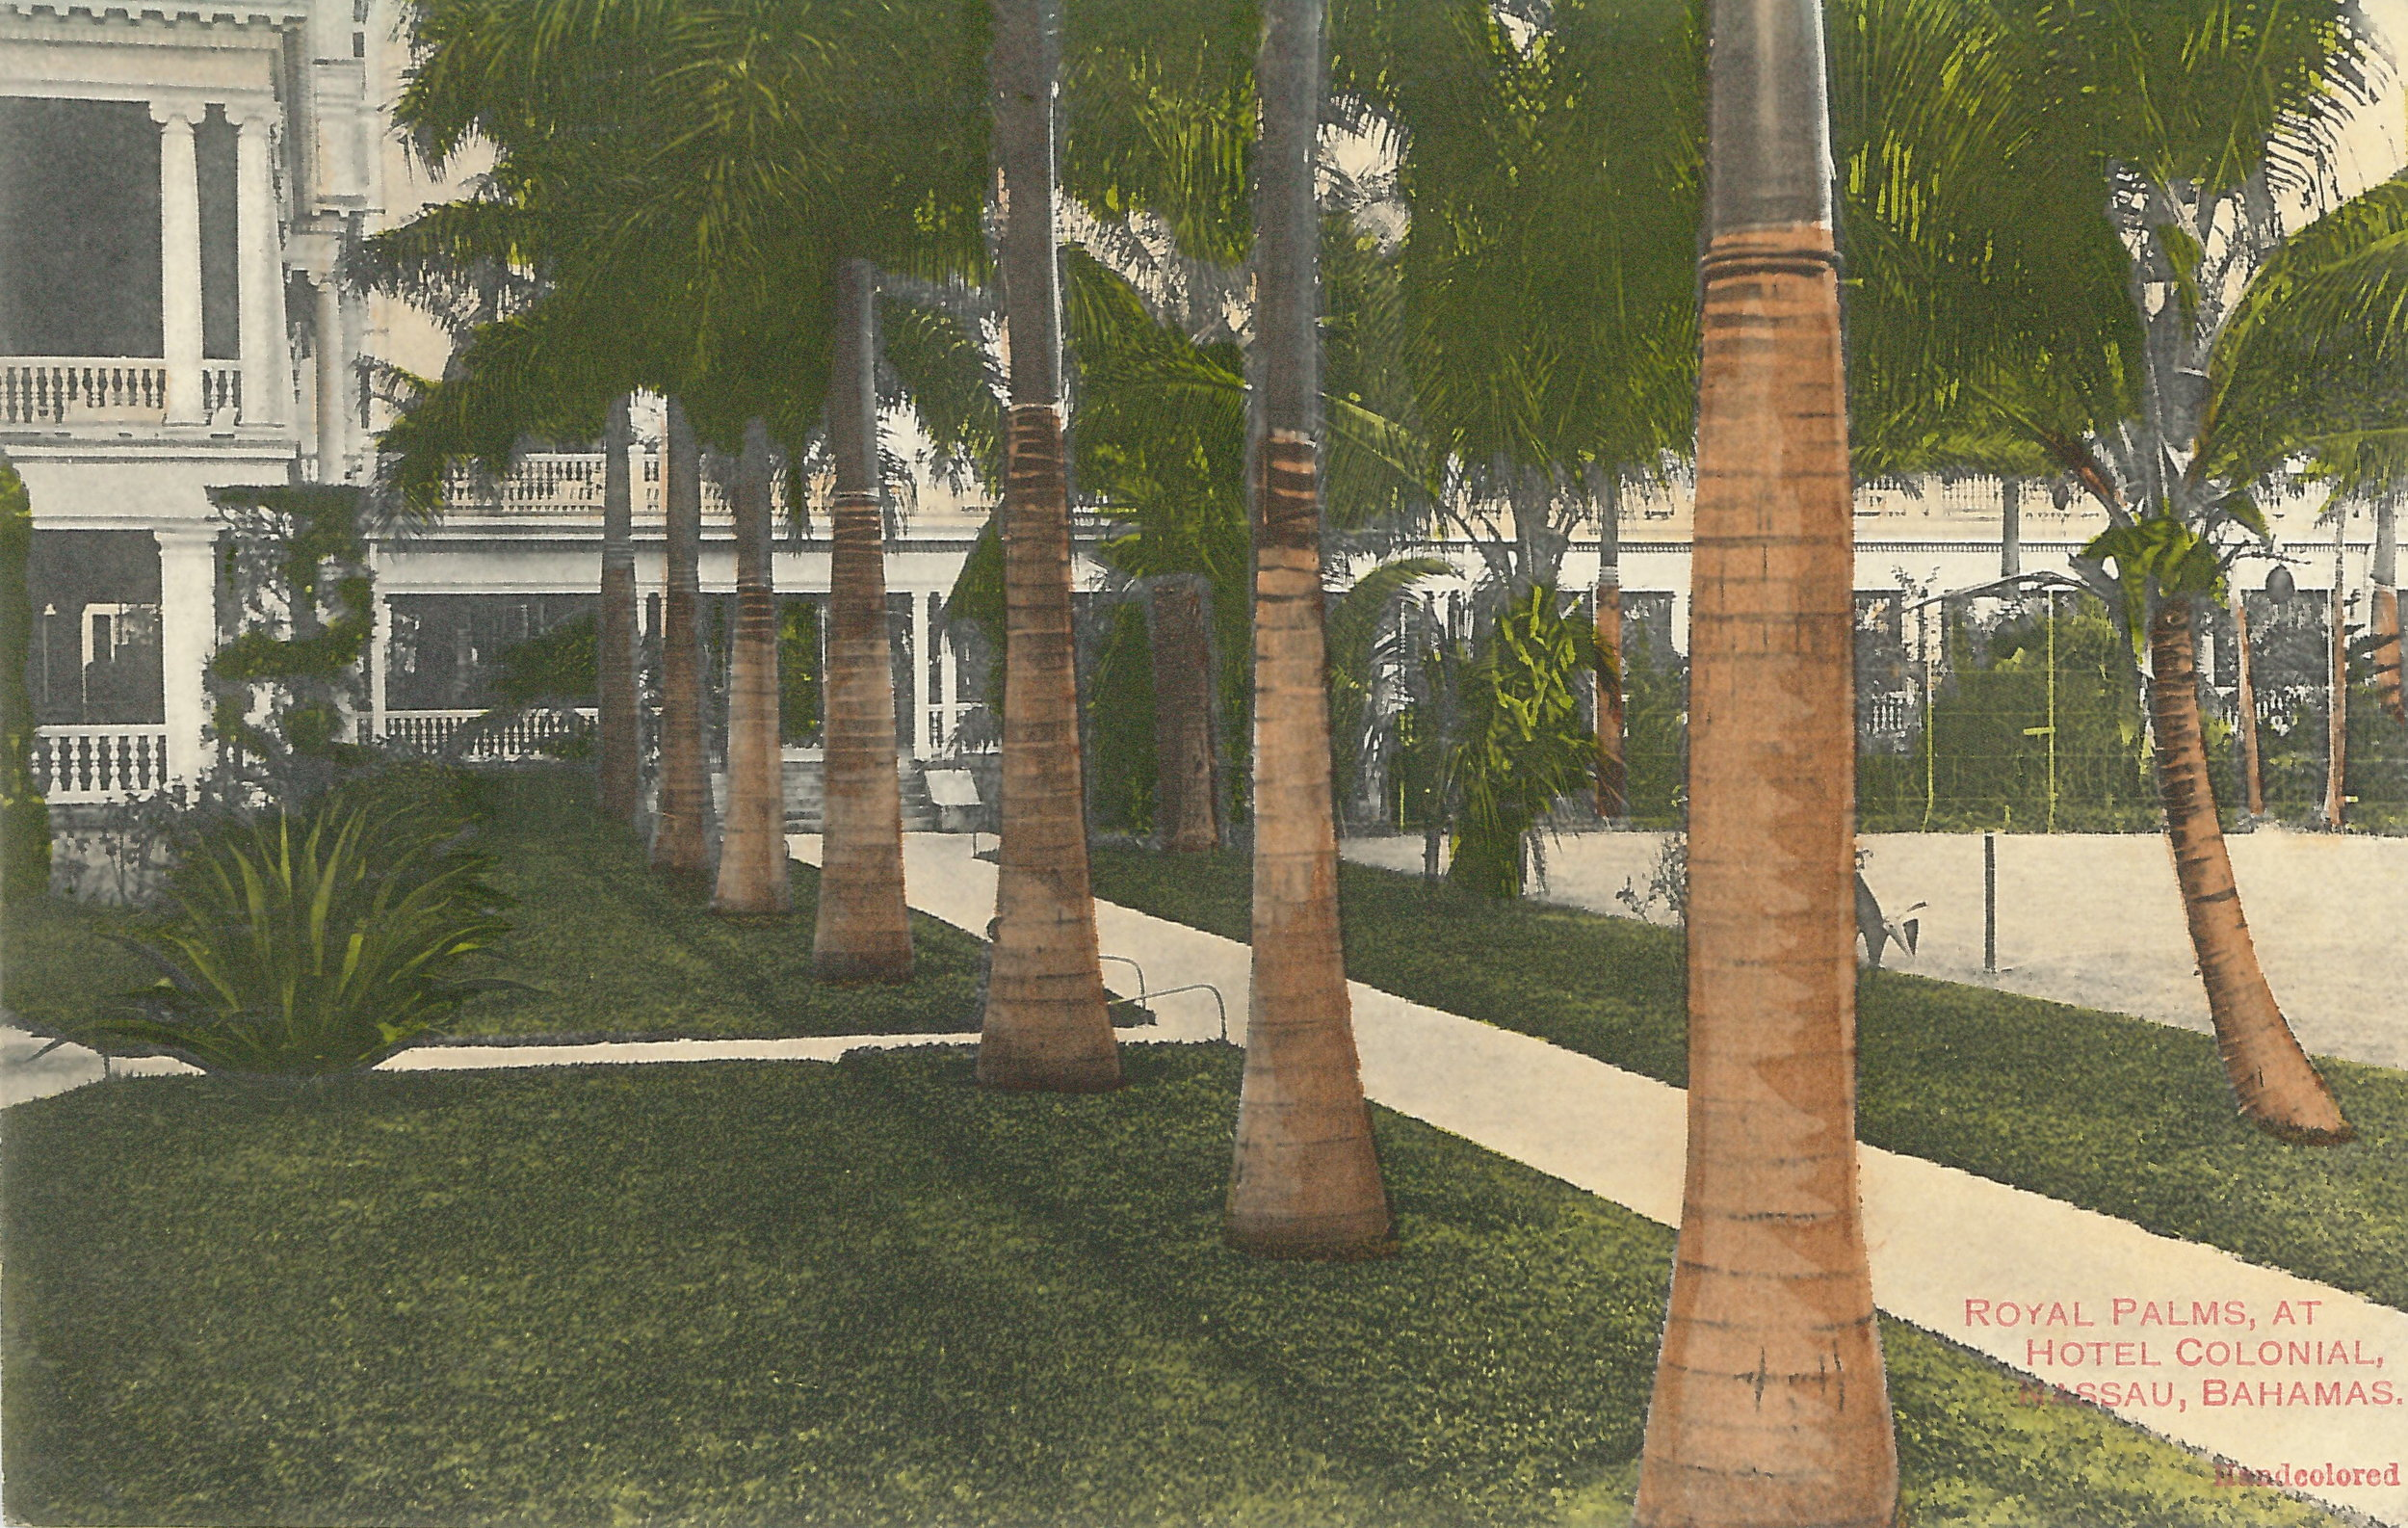 'Royal Palms at Hotel Colonial' (estimated c.1890-1930). Handcoloured colonial-era postcard by unknown artist.